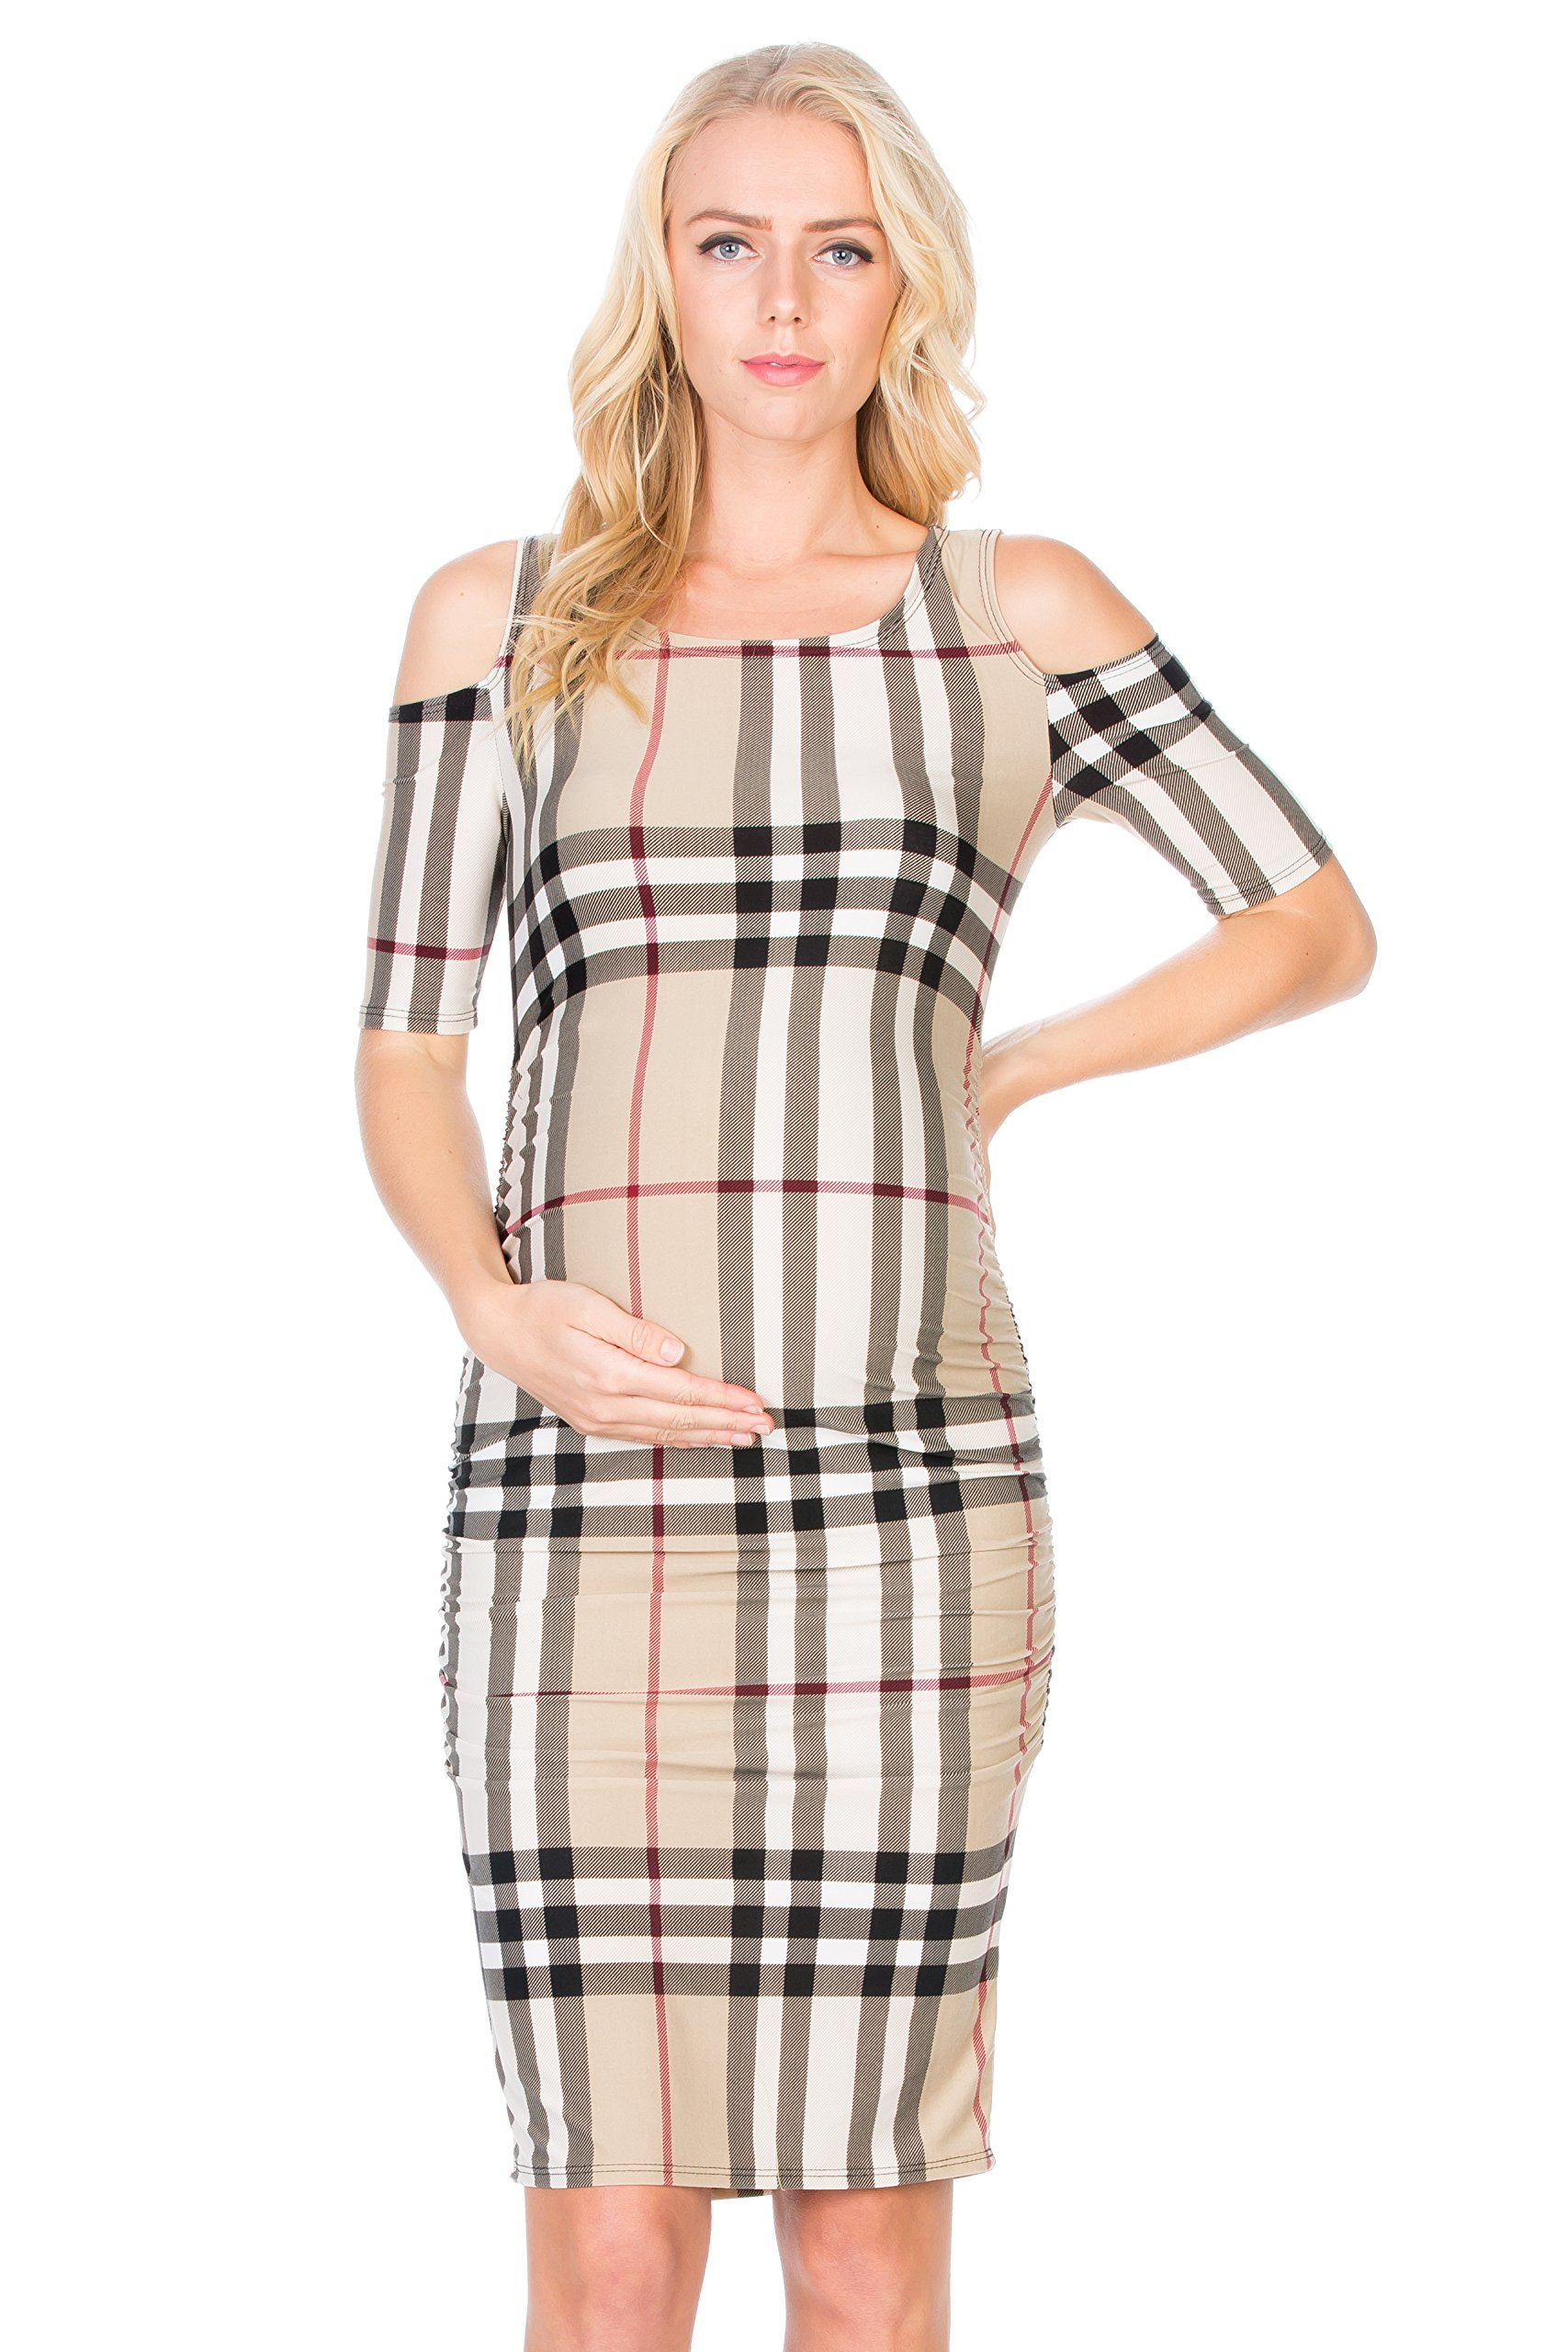 My Bump Women's Cold Shoulder Fitted Maternity Dress W/Side Ruched (X-Large, Taupe Plaid)